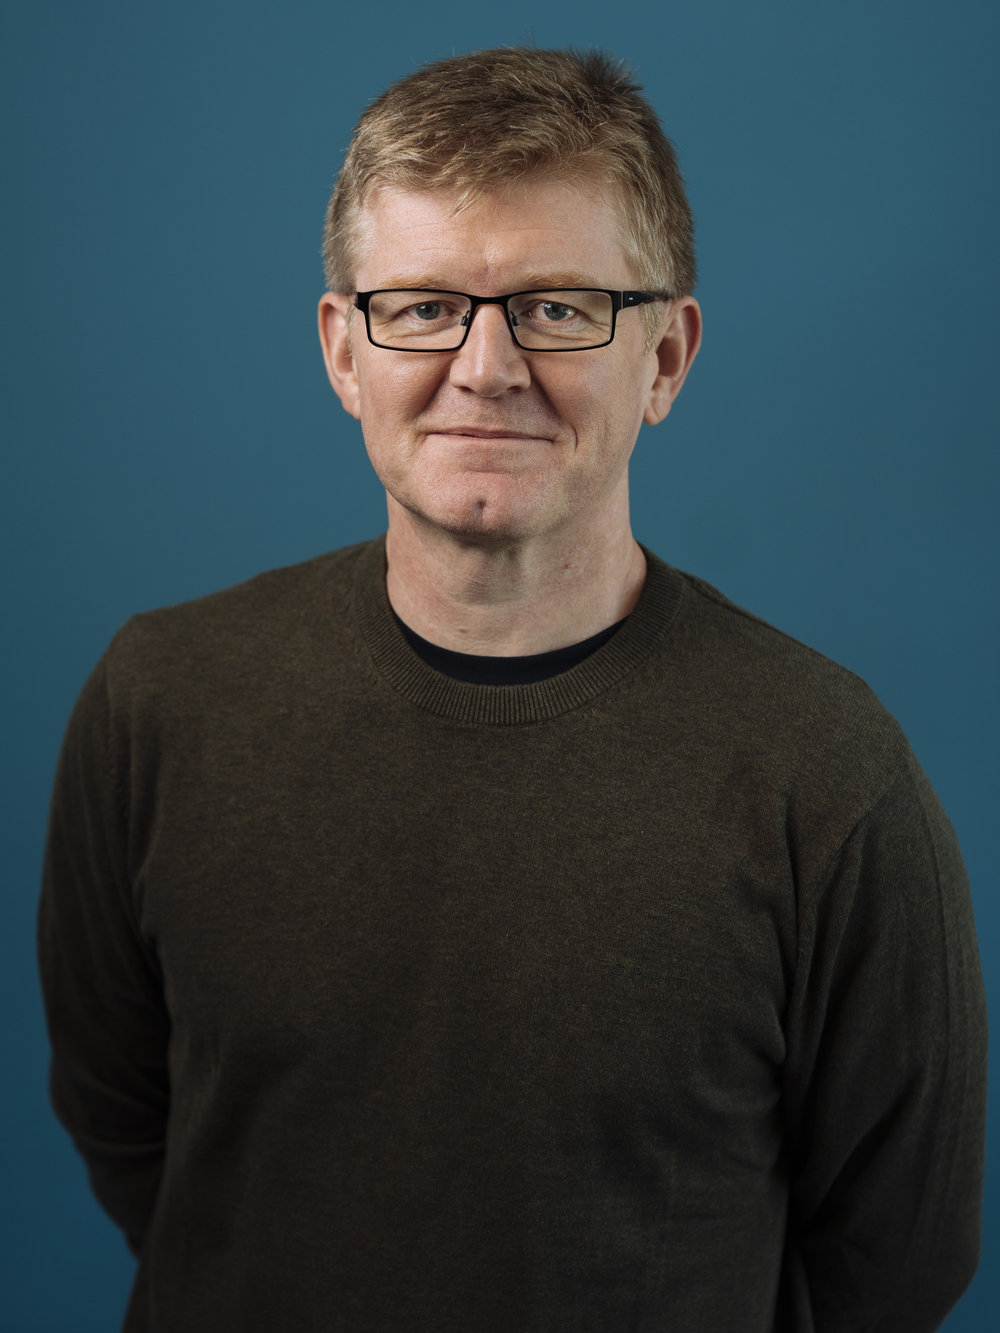 Simon Price, CEO - Based in Exawatt's UK office, Simon is responsible for Exawatt's research and market analysis services, and has deep experience in strategic planning and management consulting. He has developed, and maintains, one of the most comprehensive market models in the PV industry today.Over a career spanning more than 20 years, Simon has provided strategic planning, business development, M&A due diligence, market analysis, market forecasting and fundraising services to a number of leading companies in the energy, interactive entertainment, biotech and communications technology sectors.Simon has been in the energy industry since 2008, when he was part of the founding team of a startup technology company dedicated to improving the efficiency of crystalline solar cells. Prior to co-founding Exawatt, in 2010 he was a member of the founding team of PV Tech Group, which provided factory design and integration services to solar PV companies.Previously, as a management consultant in the interactive entertainment industry, Simon provided services to a number of industry-leading manufacturers, including Microsoft, Sony, Intel and Nokia. Other clients included software publishers and financial institutions. Simon began his career as a business journalist, overseeing two of the interactive entertainment industry's leading publications.Simon has an MSc in Science Communication from Imperial College of Science, Technology and Medicine, University of London, and a BEng in Electrical and Electronic Engineering from the University of Newcastle upon Tyne, UK.In an office full of sporting over-achievers and mountain adventurers, Simon has taken to riding his home-made electric bike in a bid to keep up.